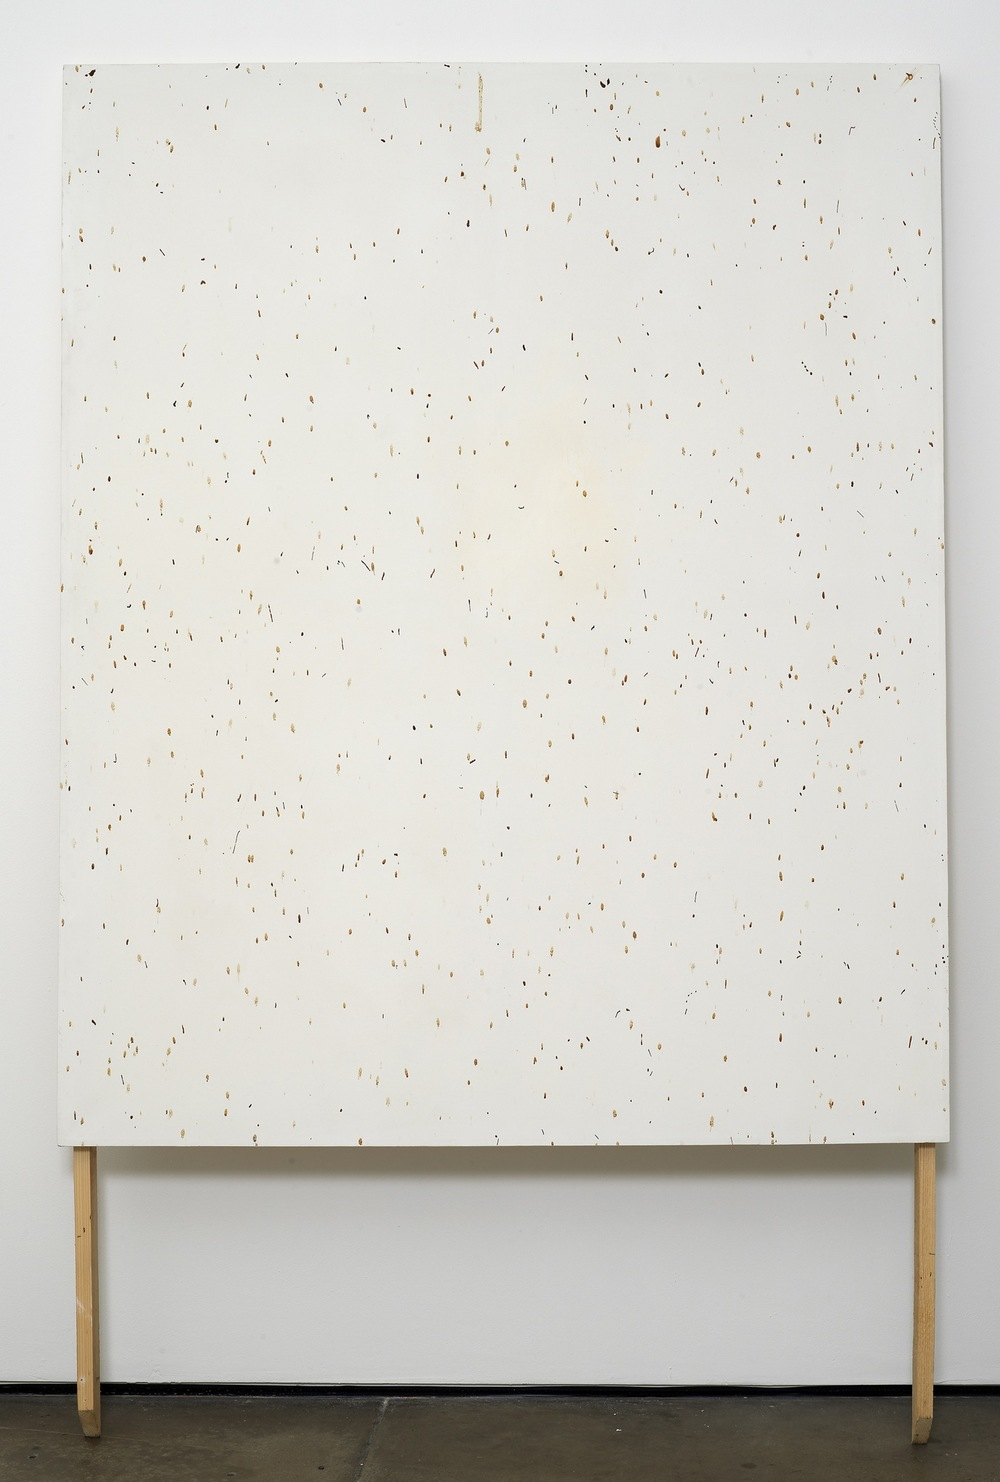 Bee Painting, Large Screen IV 2009 Bee droppings on grounded canvas 148 x 120 cm